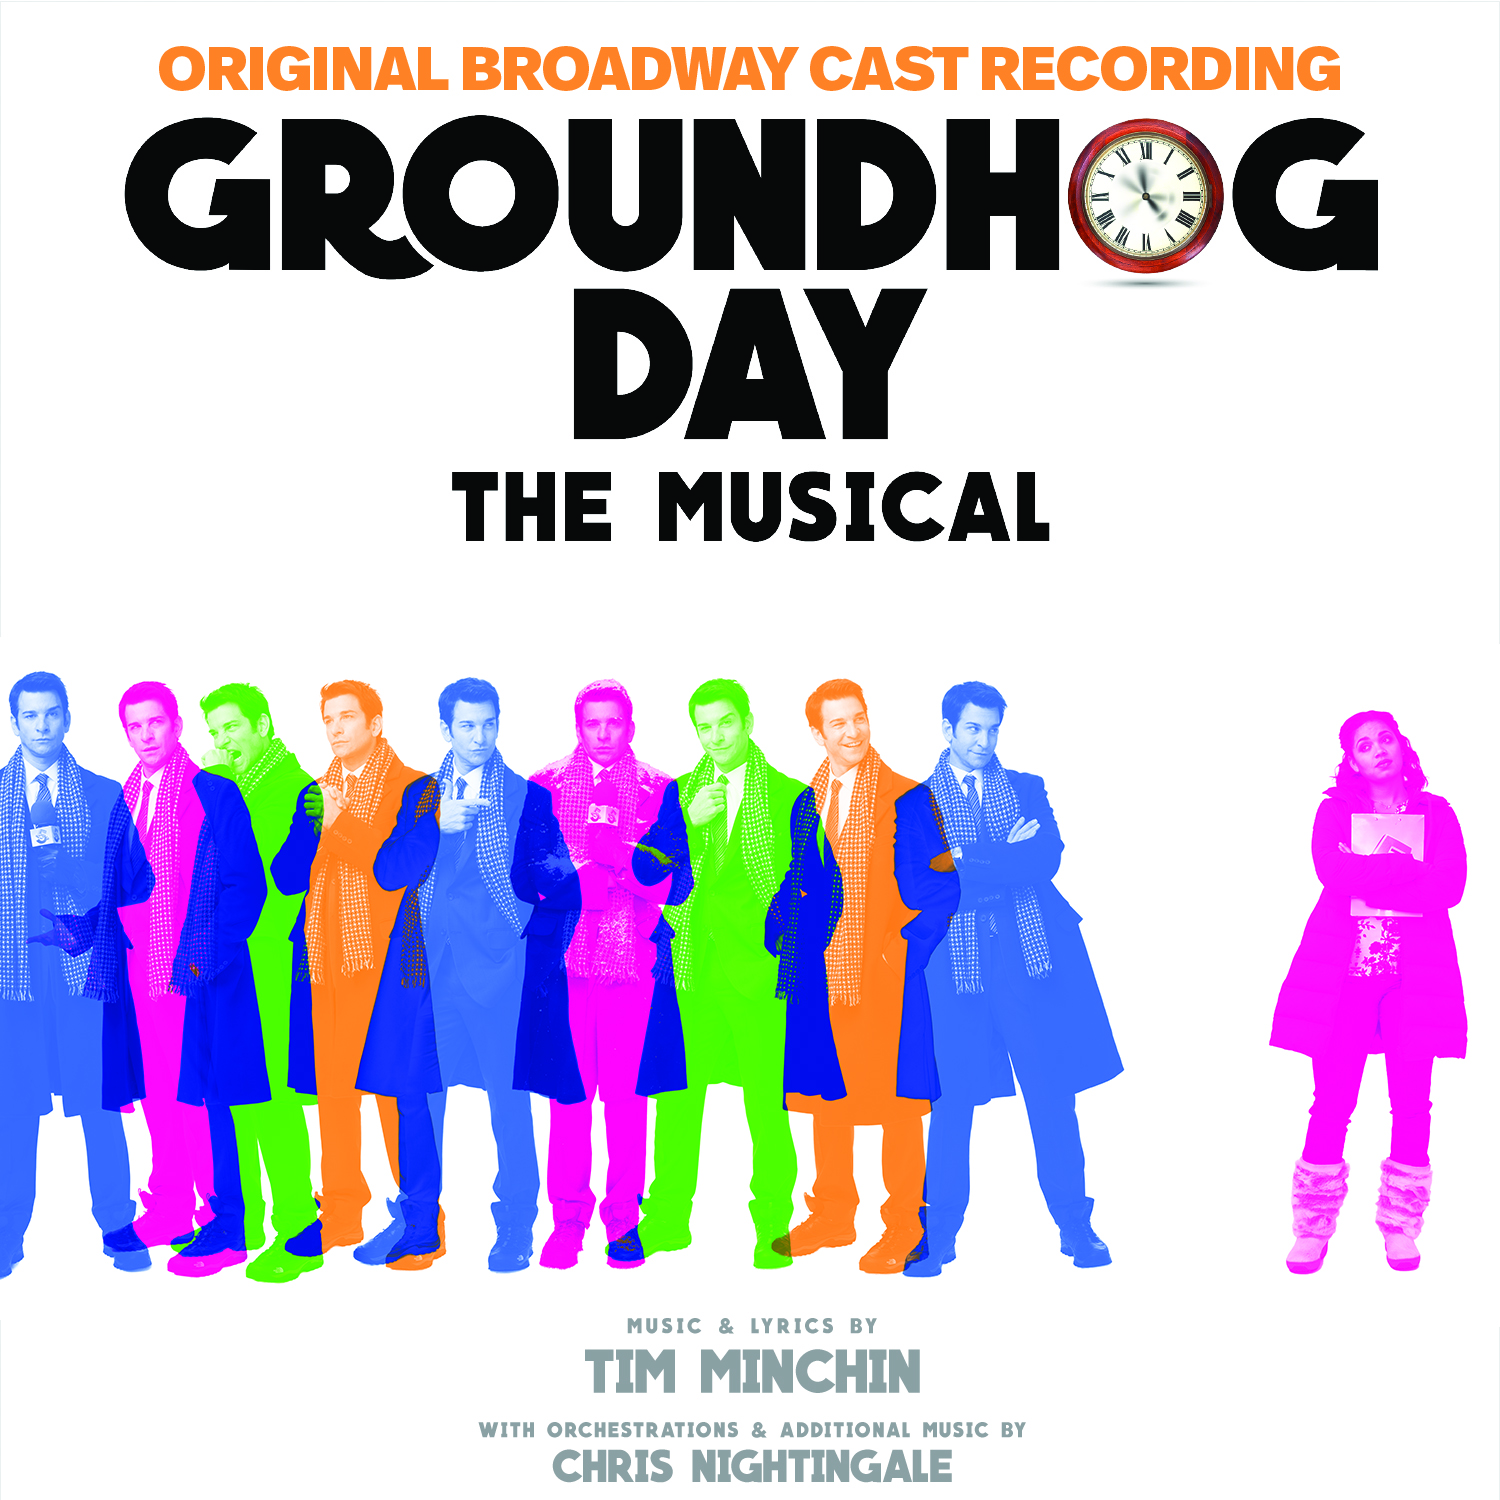 GROUNDHOG DAY – ORIGINAL BROADWAY CAST 2017